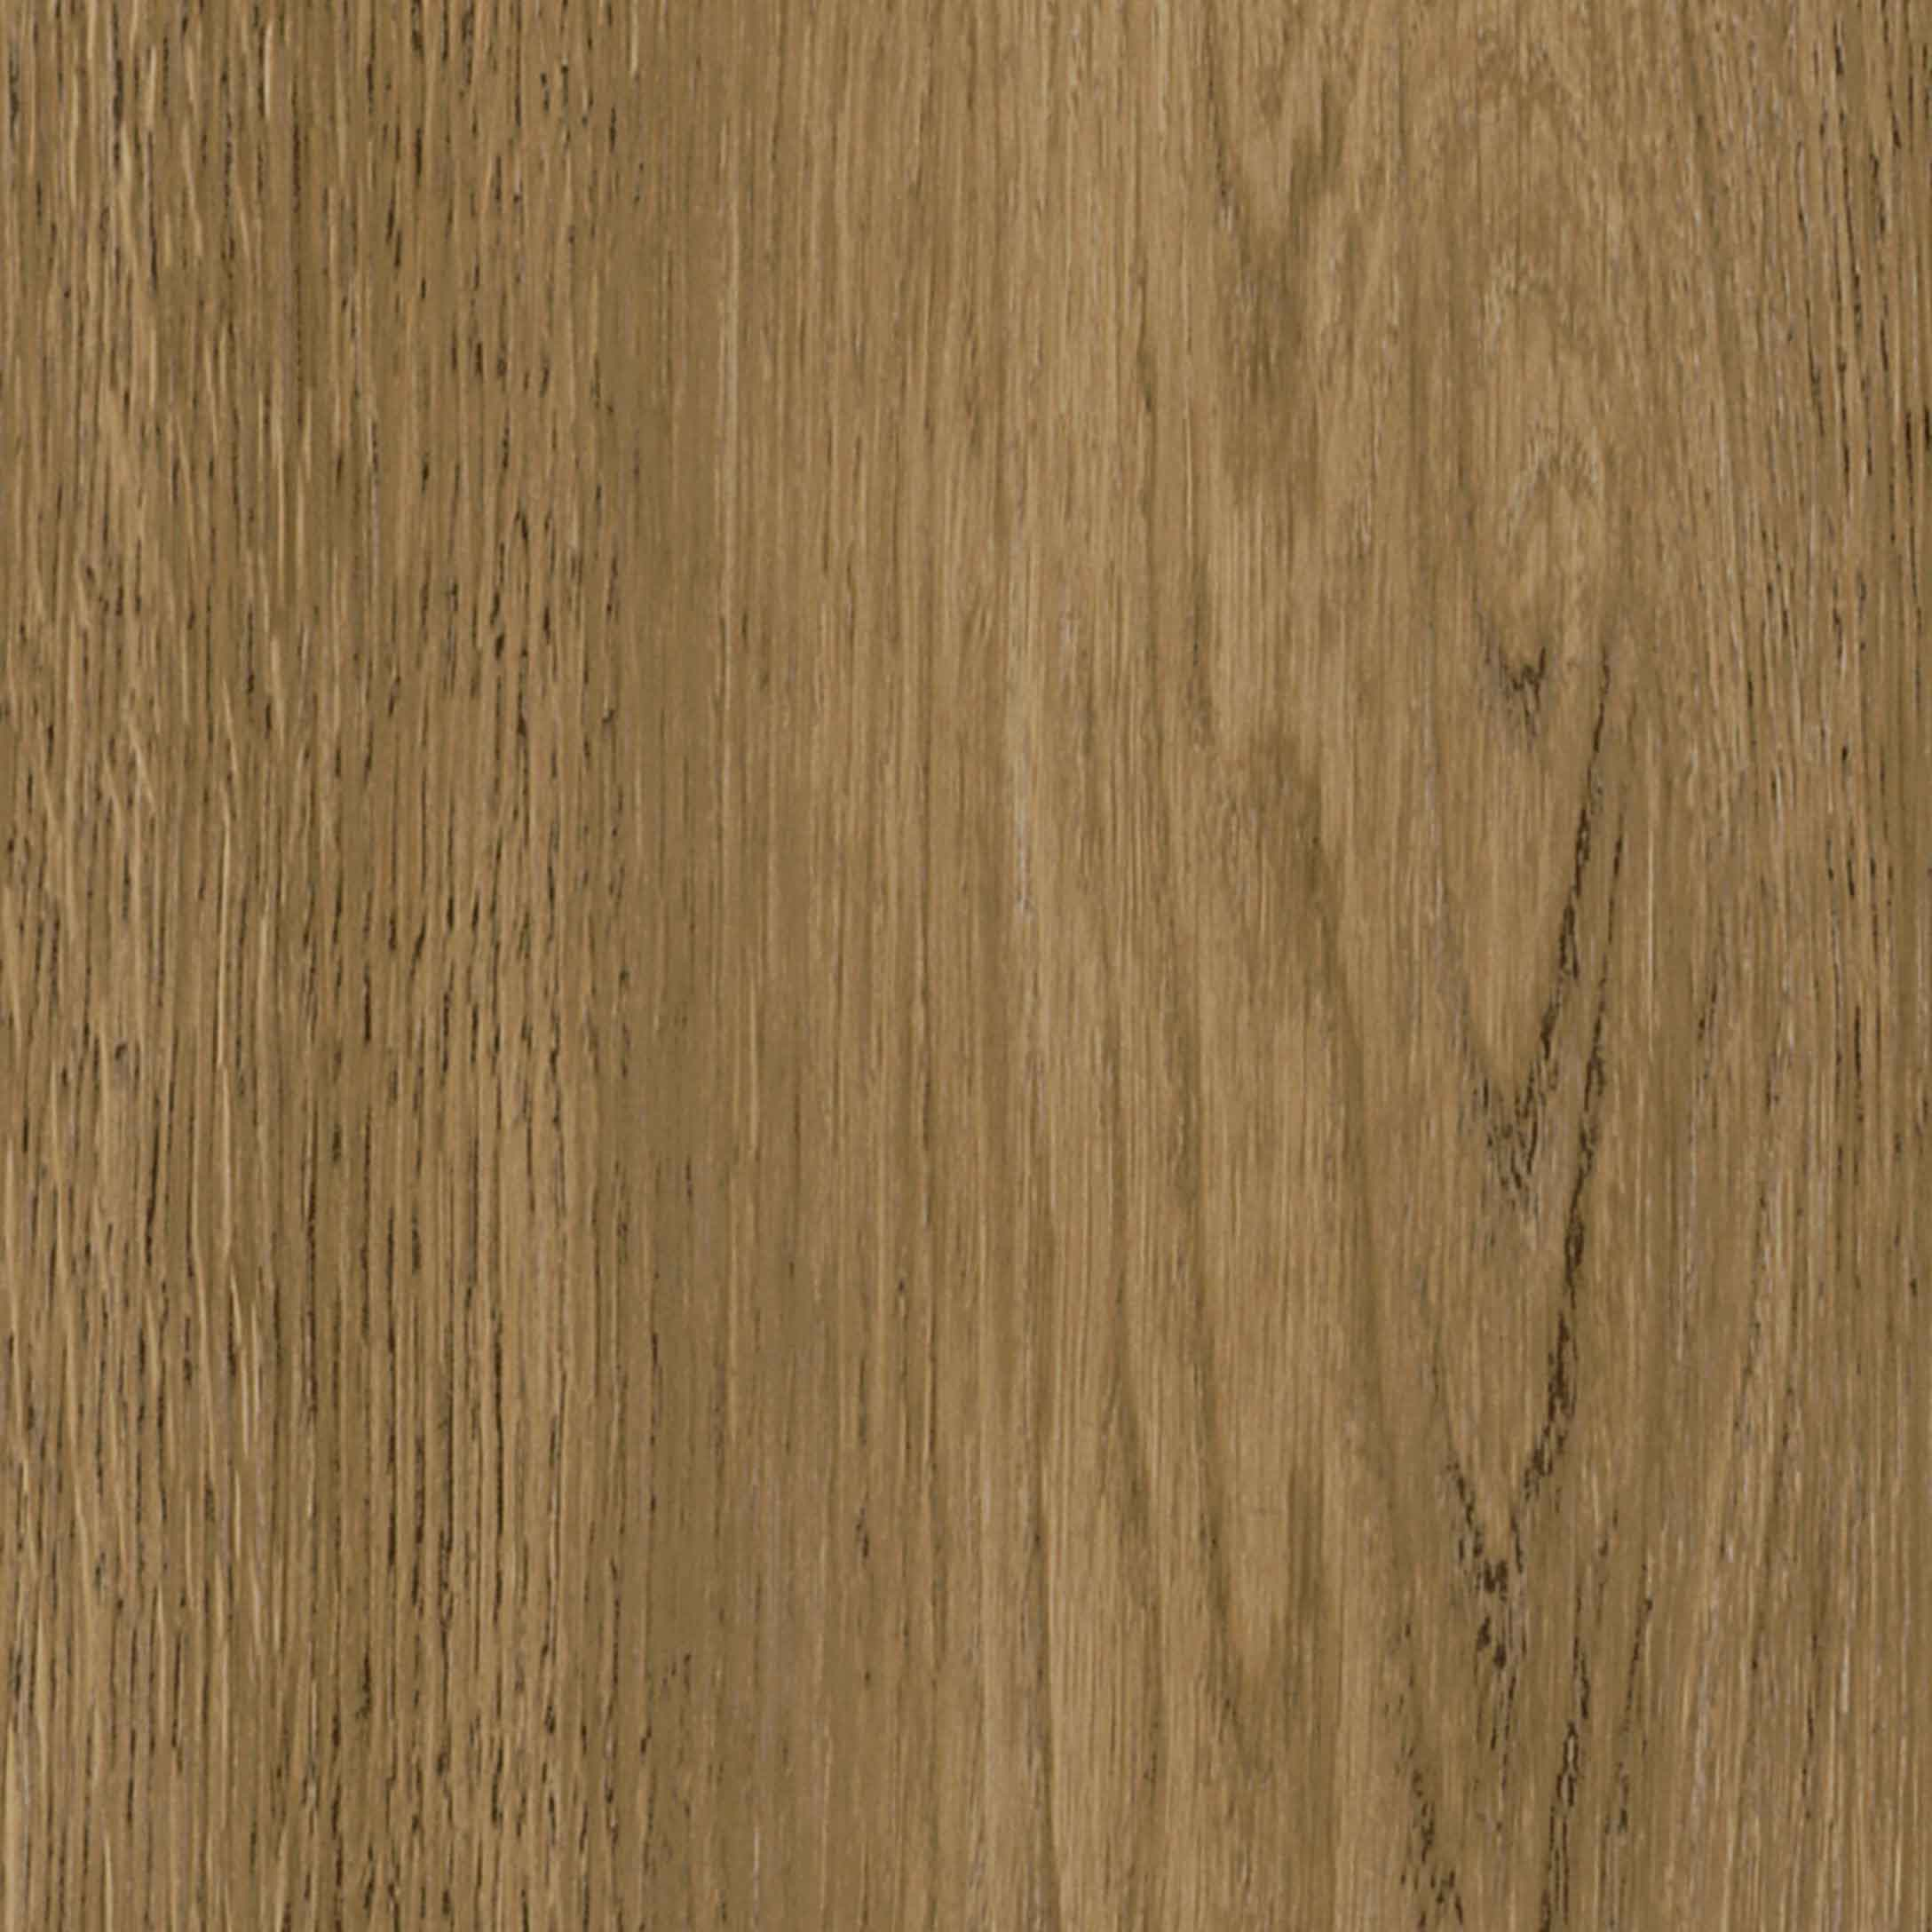 Brushed Oak, medium 2965